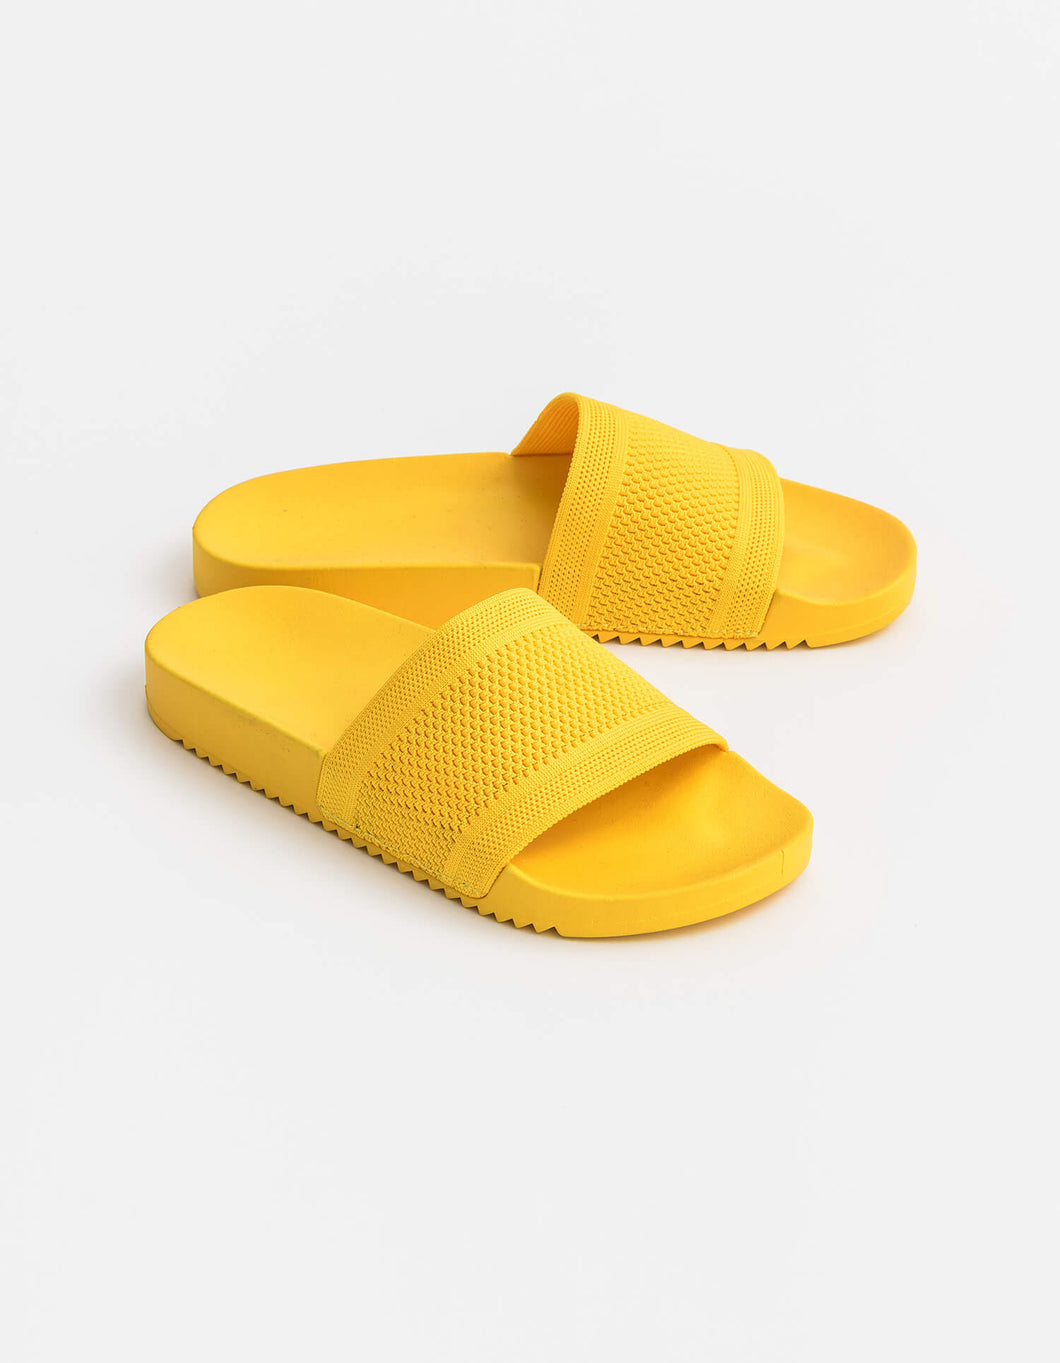 Simple Summer Slides by Stella & Gemma